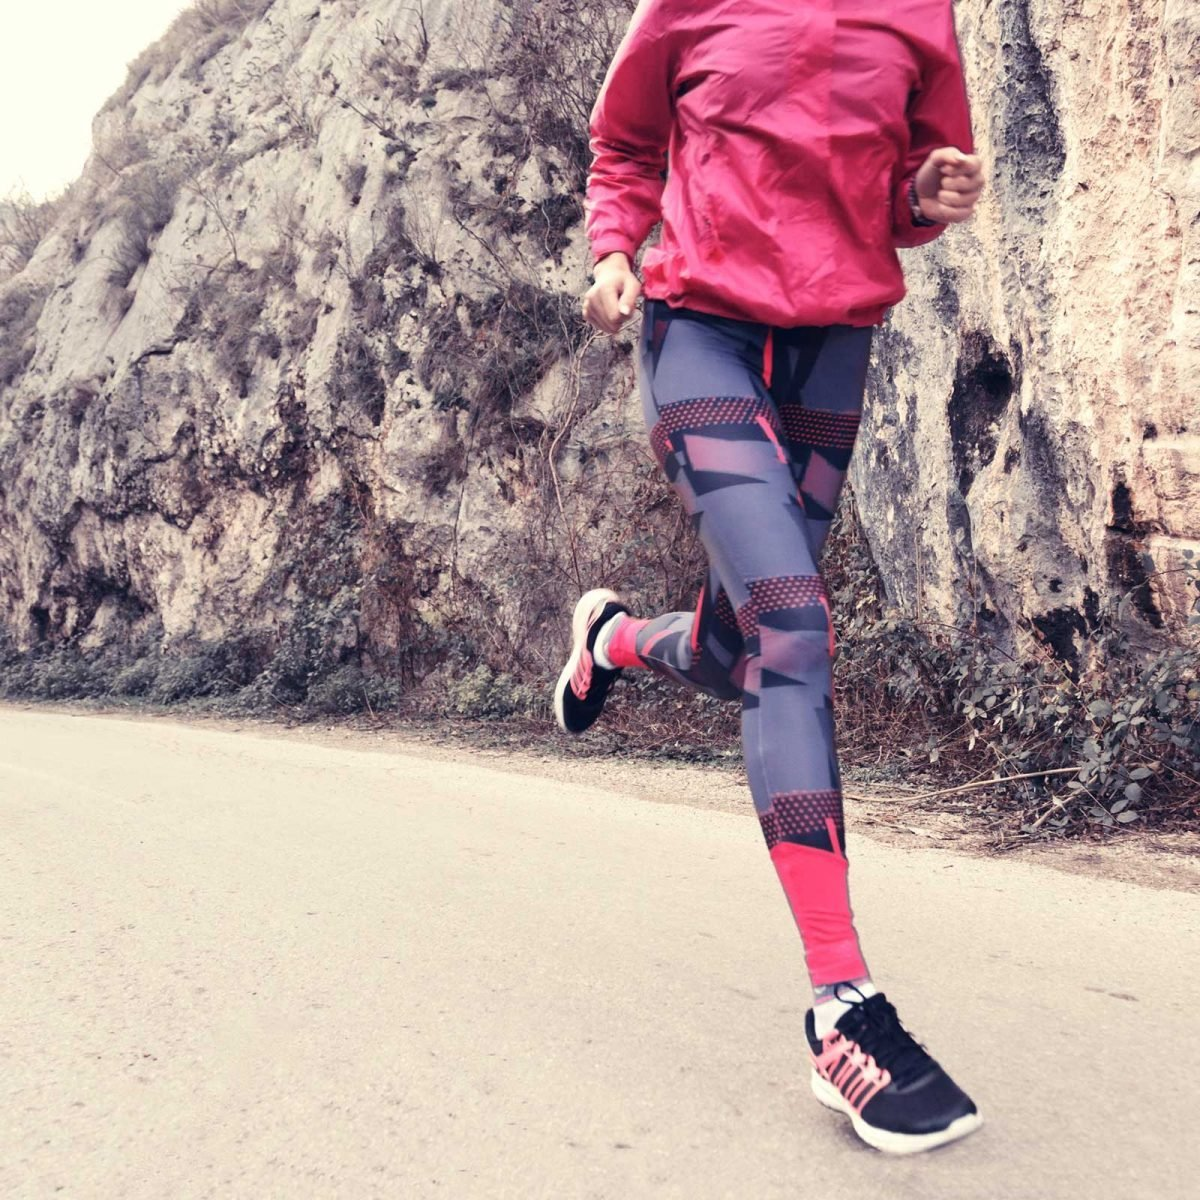 858a28fbf2 How Leggings and Tight Clothes Cause Health Issues | Reader's Digest